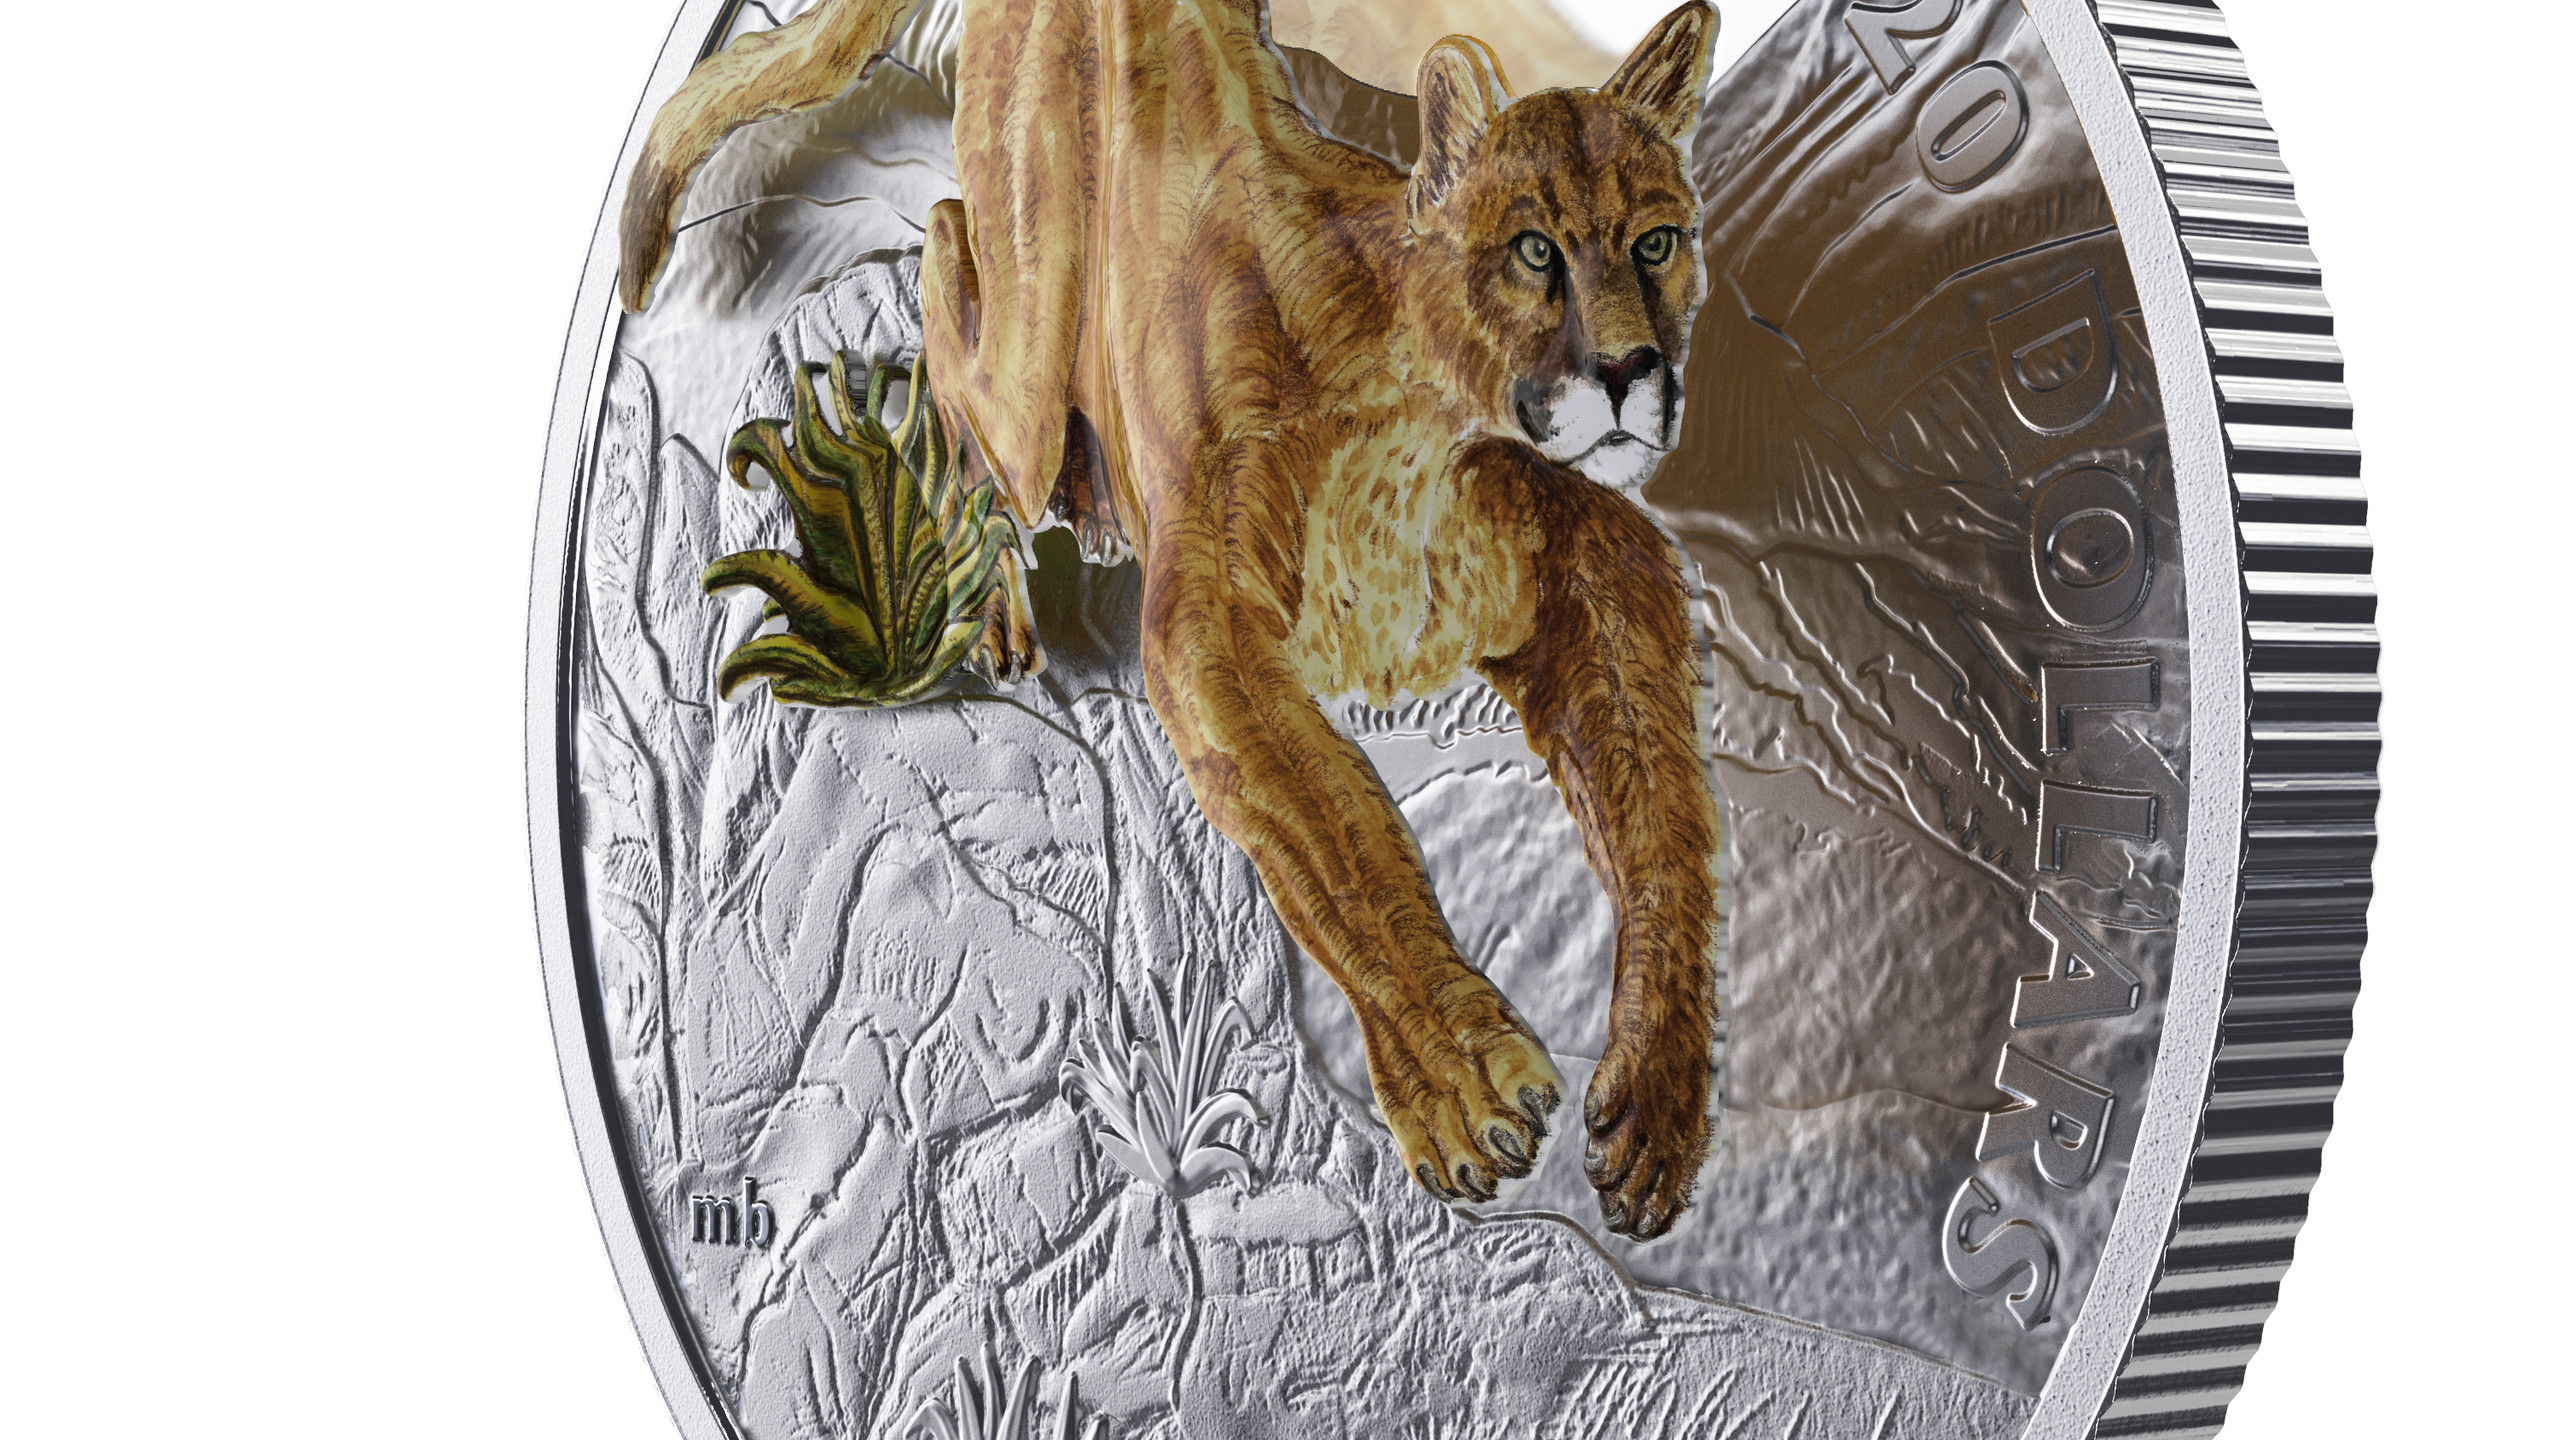 2017 $20 Fine Silver Coin- Leaping Cougar Side View